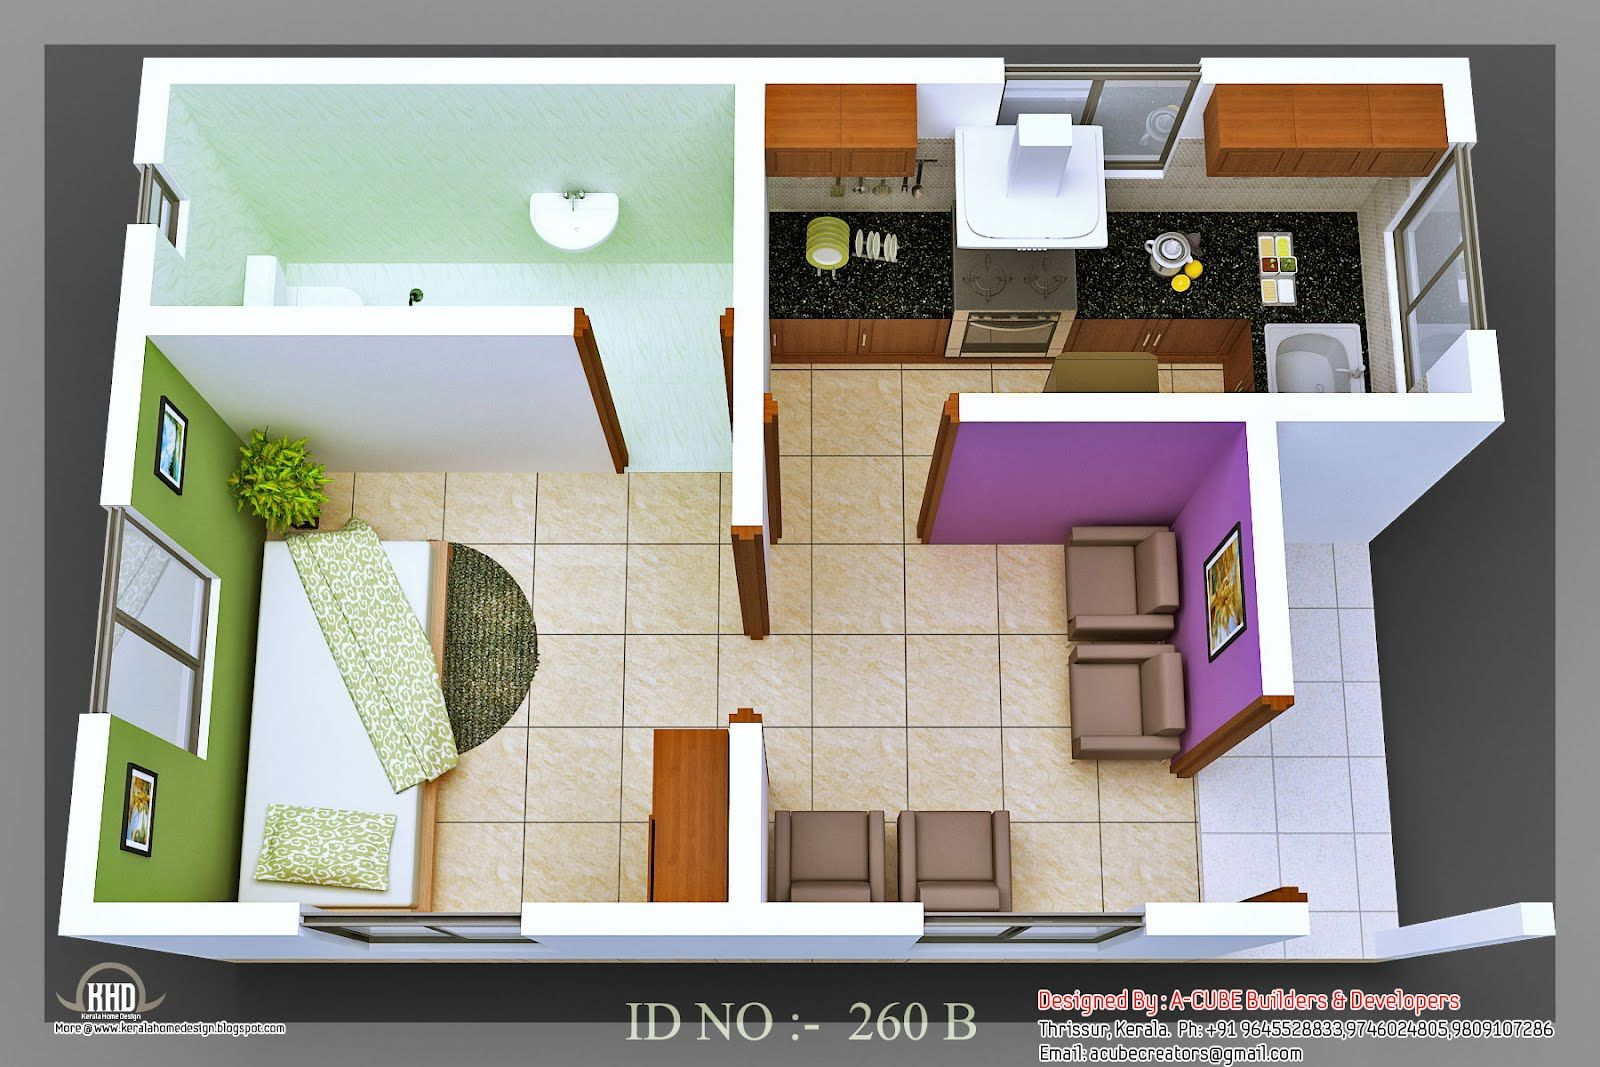 Small Houses Plans small house project plans Isometric Views Small House Plans Kerala Home Design Floor Information Isometric Small House Plans